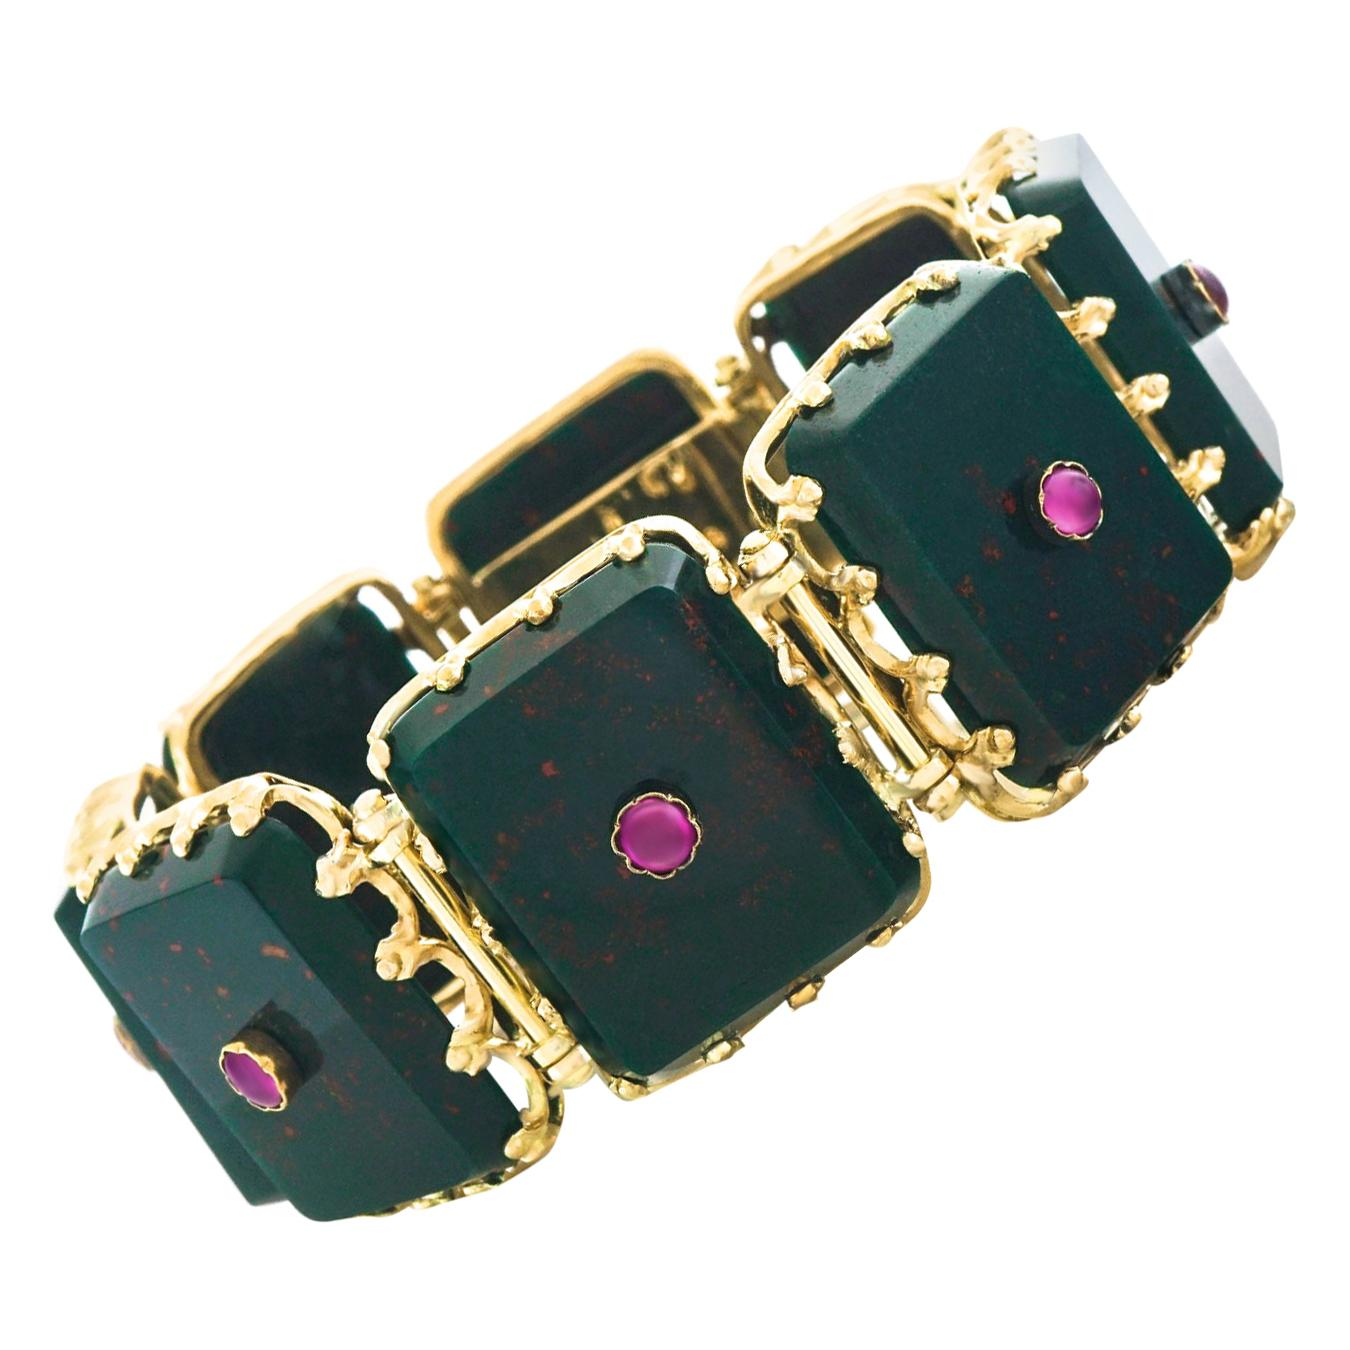 Antique French Bloodstone and Ruby-Set Gold Bracelet